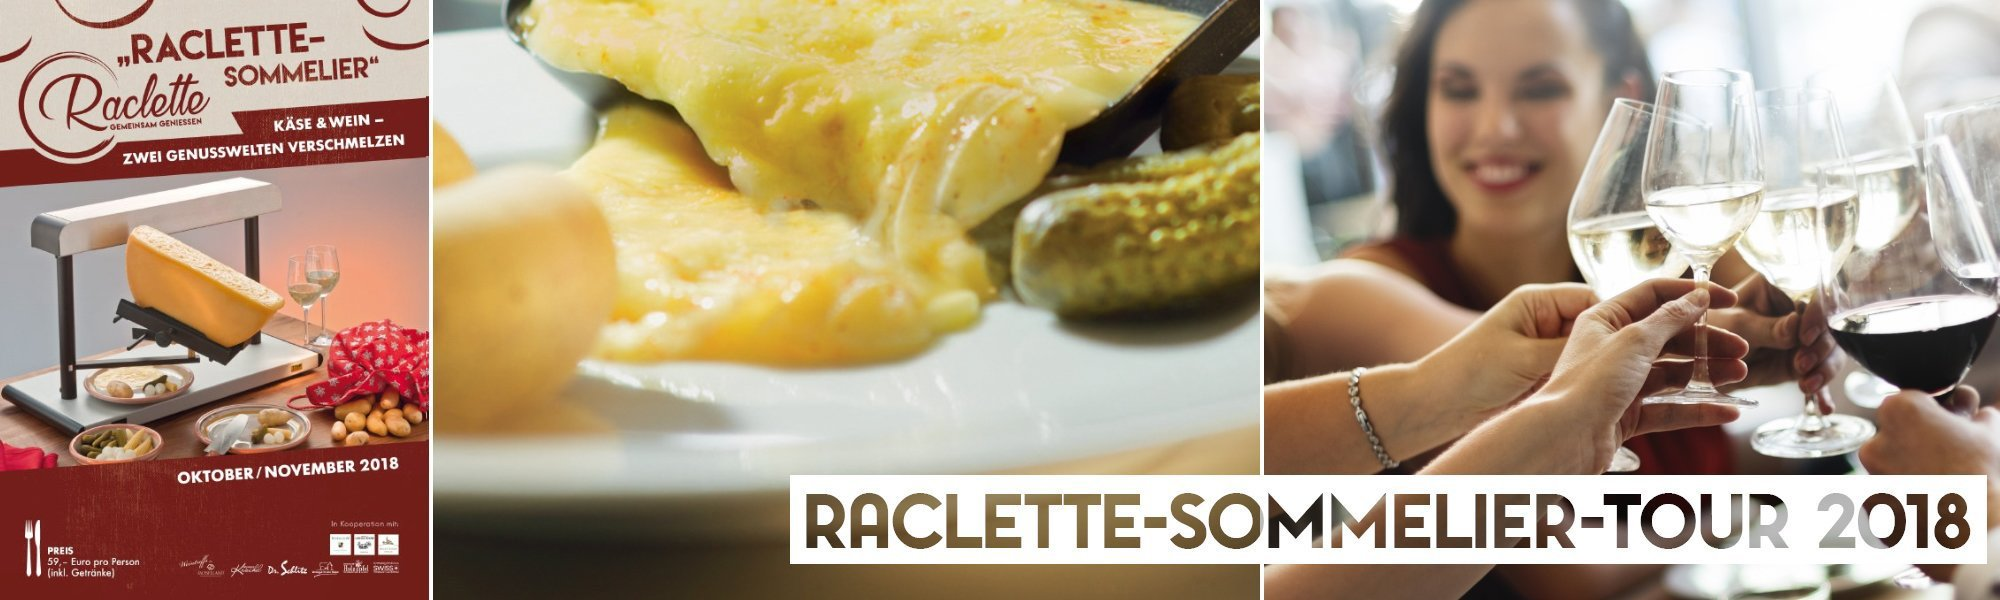 Raclette Sommelier April 2018